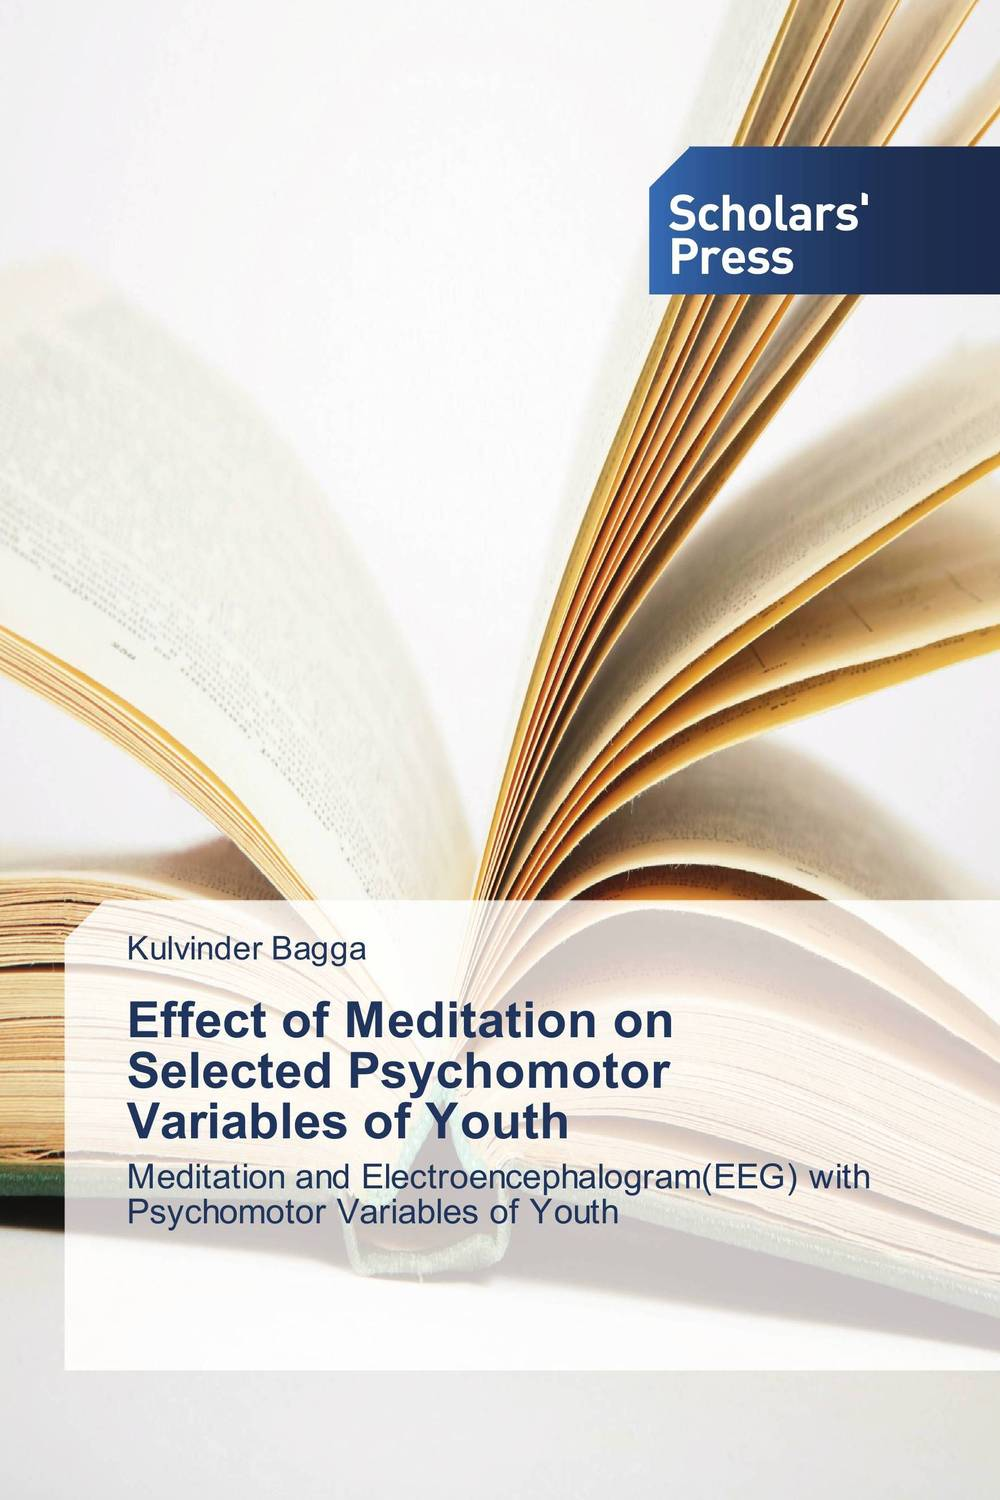 все цены на Effect of Meditation on Selected Psychomotor Variables of Youth онлайн